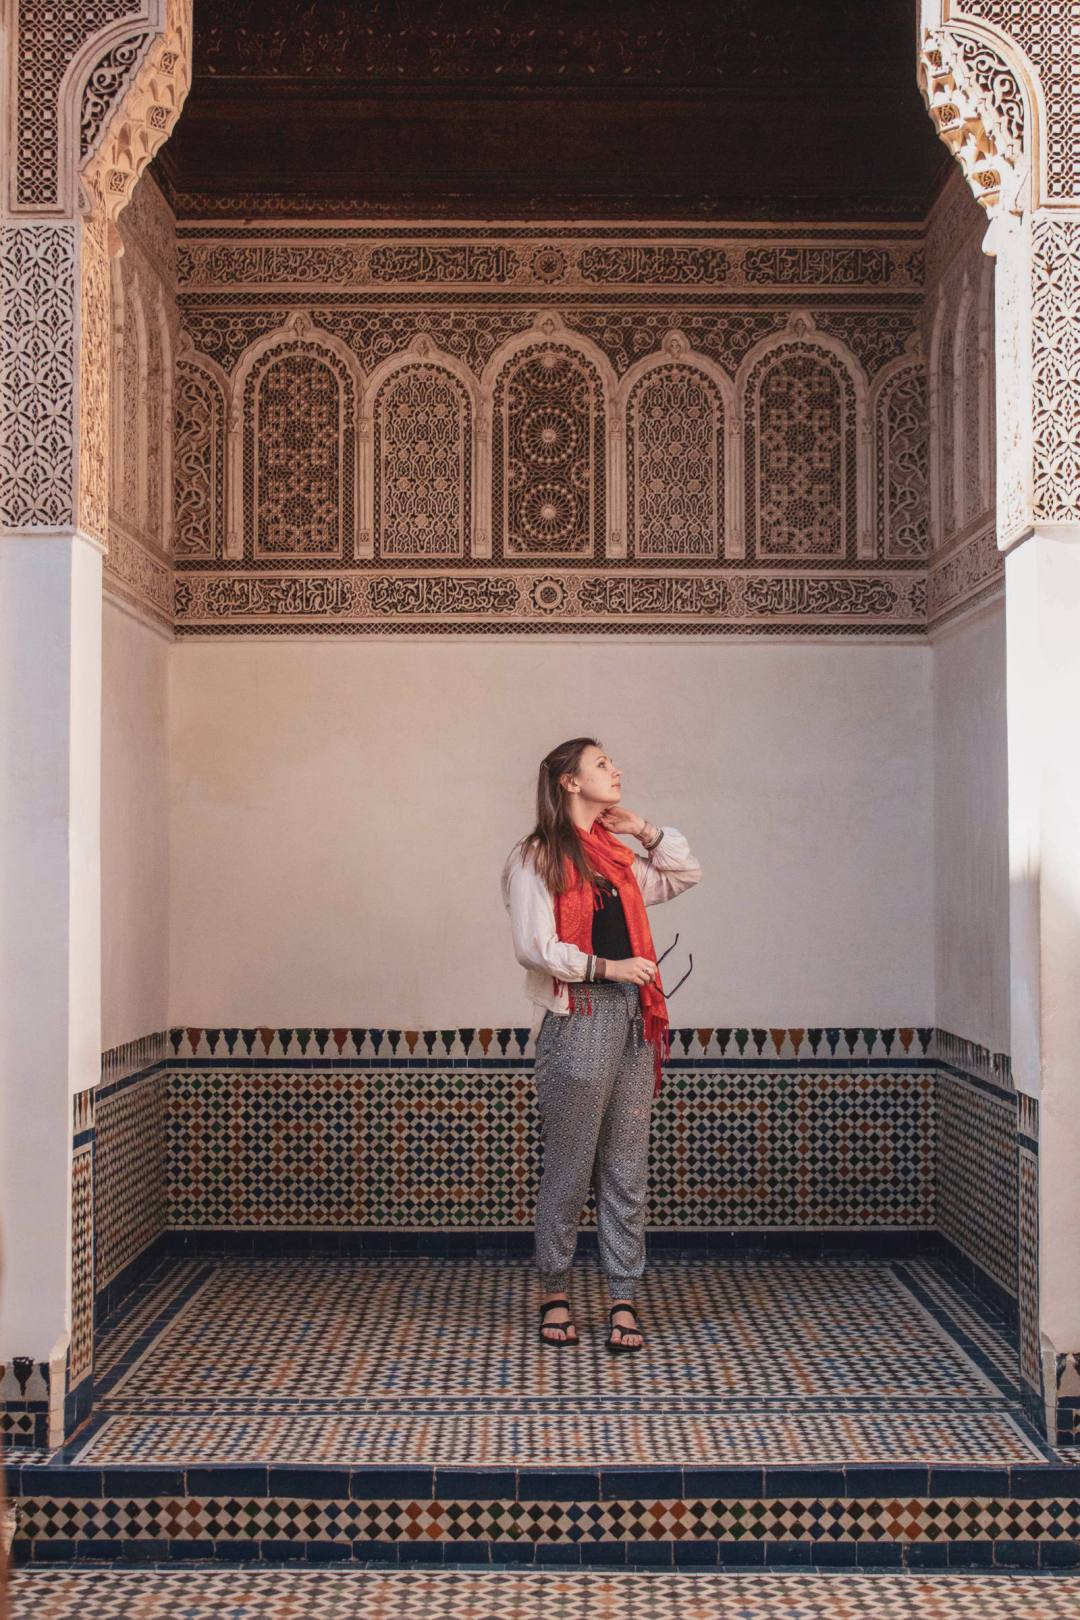 woman looks up in archway of Bahia Palace Marrakech